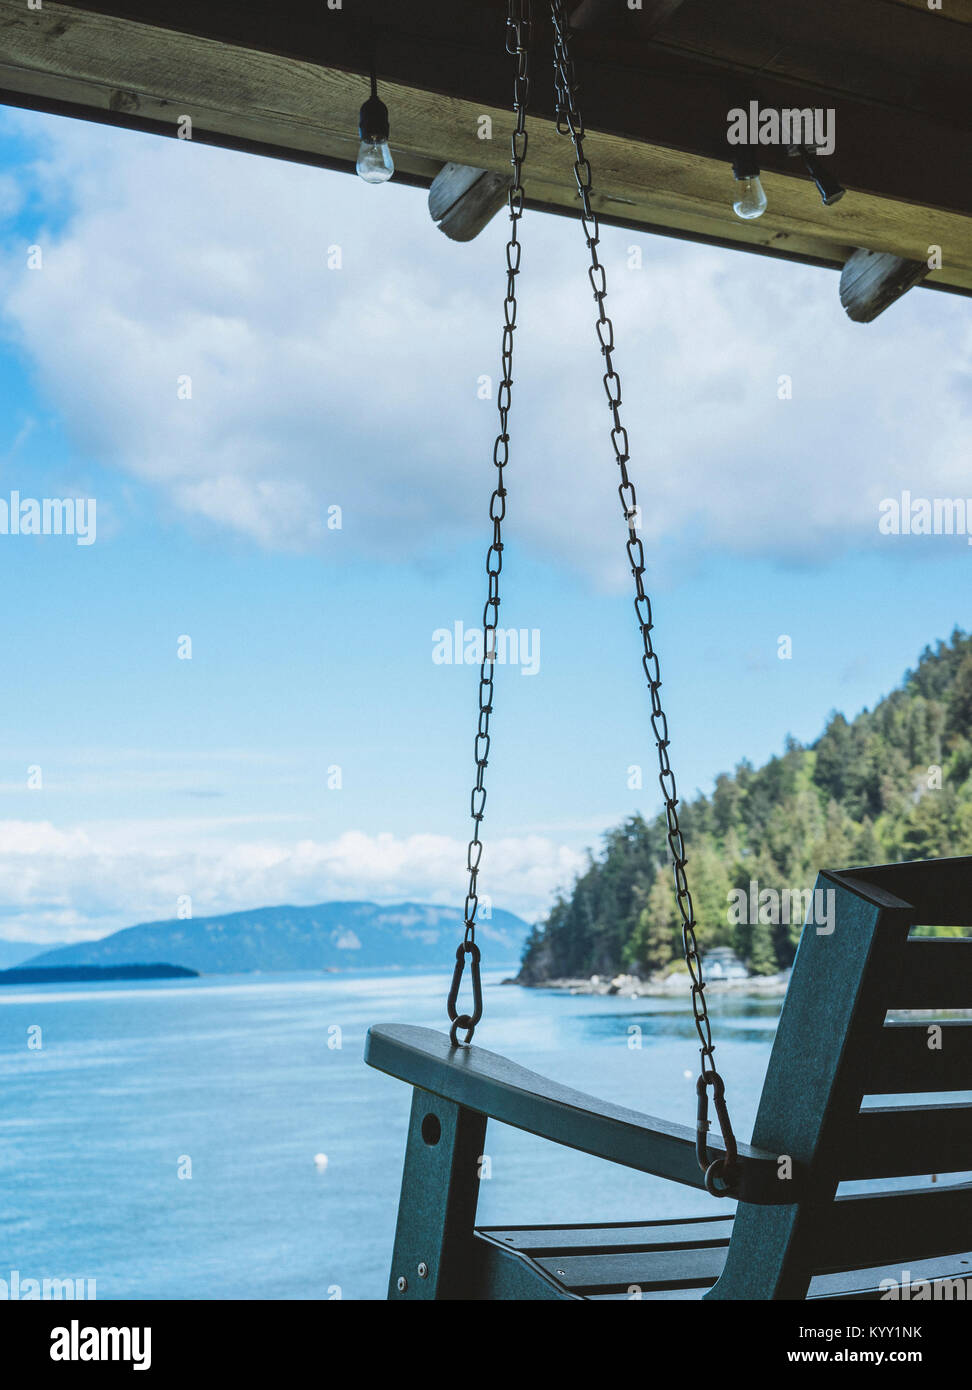 Porch swing against sea - Stock Image